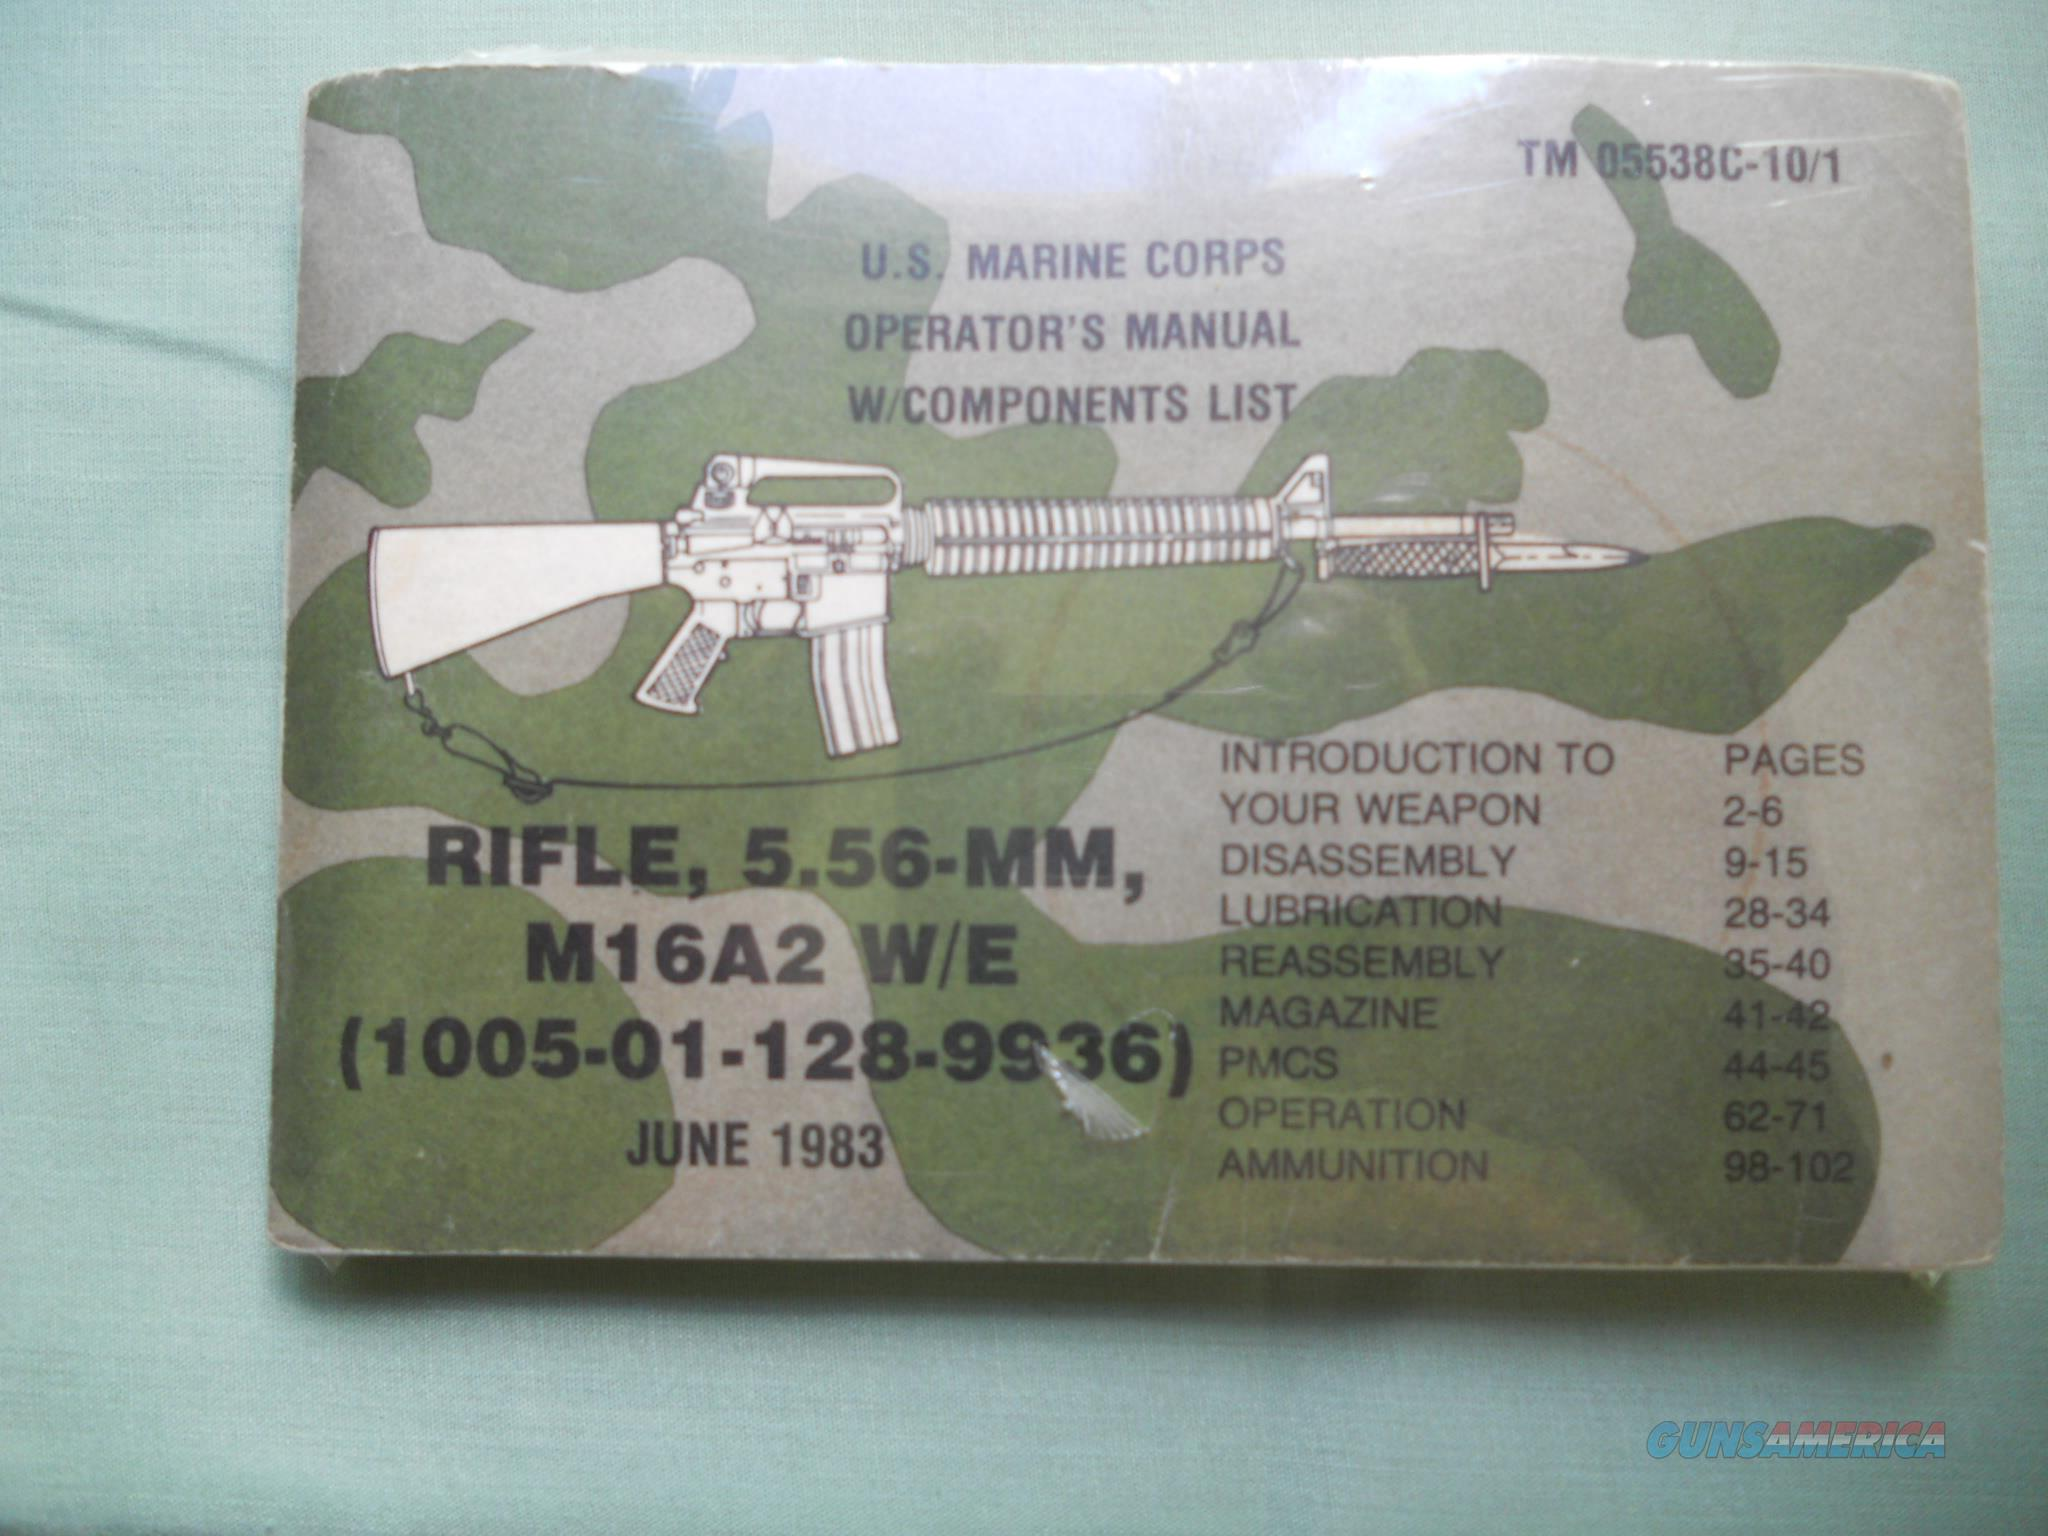 U.S. MARINE CORPS RIFLE , 5.56-MM M16A2 W/E ... Operator's TM 05538C-10/1 ,   Non-Guns > Magazines & Clips > Rifle Magazines > AR-15 Type